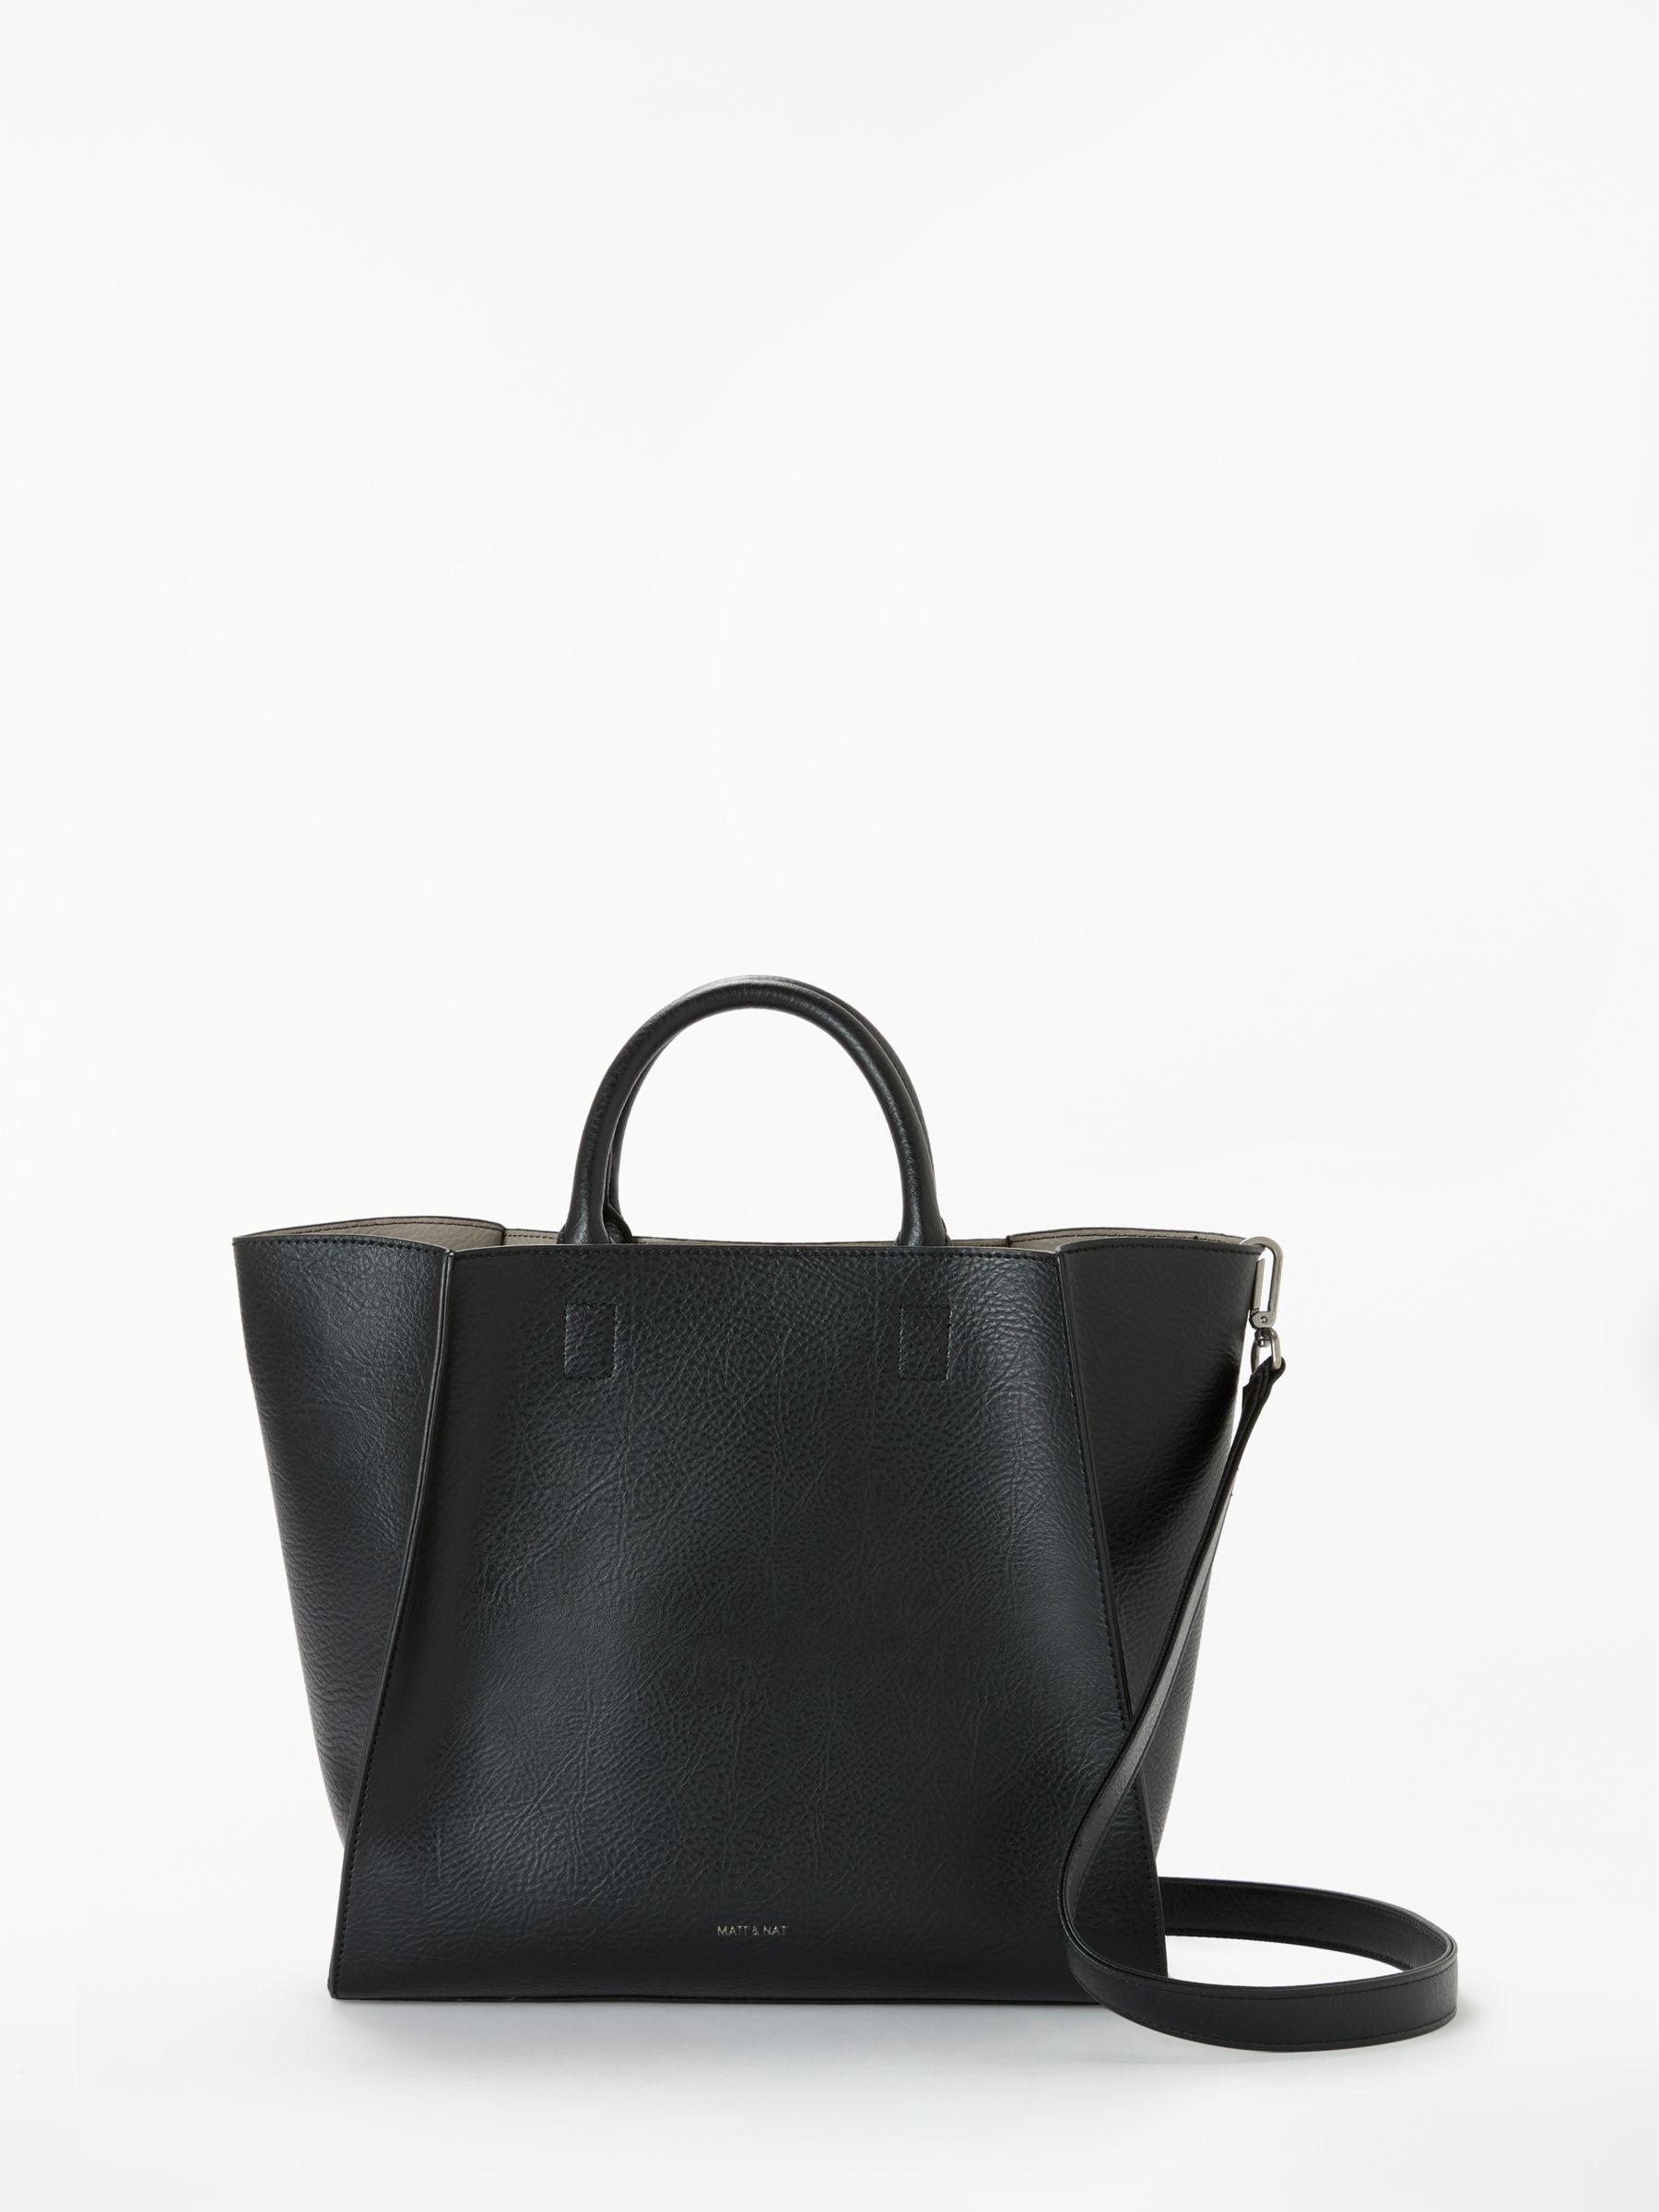 the latest top design quite nice Dwell Collection Loyal Vegan Tote Bag